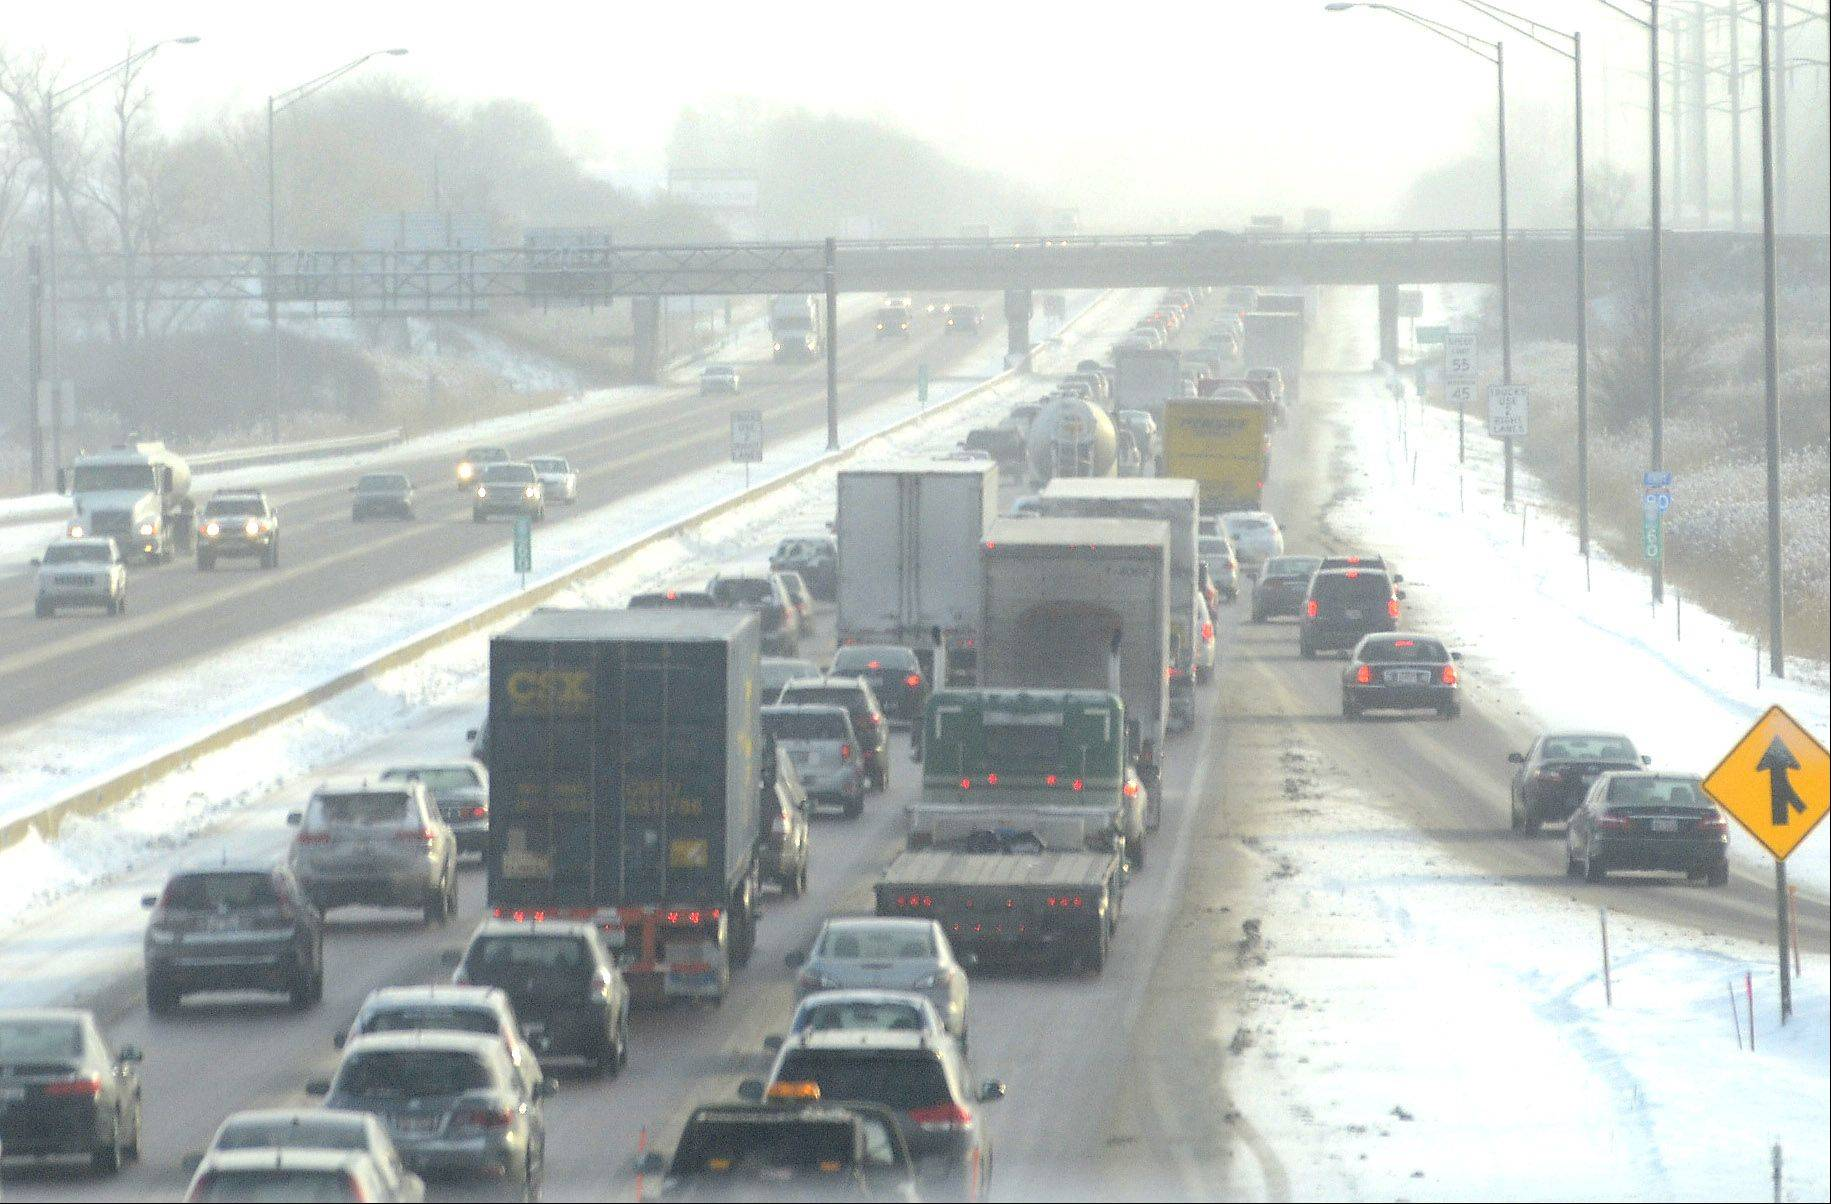 Traffic is backed up on I90 eastbound around Bartlett Road from sloppy driving conditions Wednesday morning.